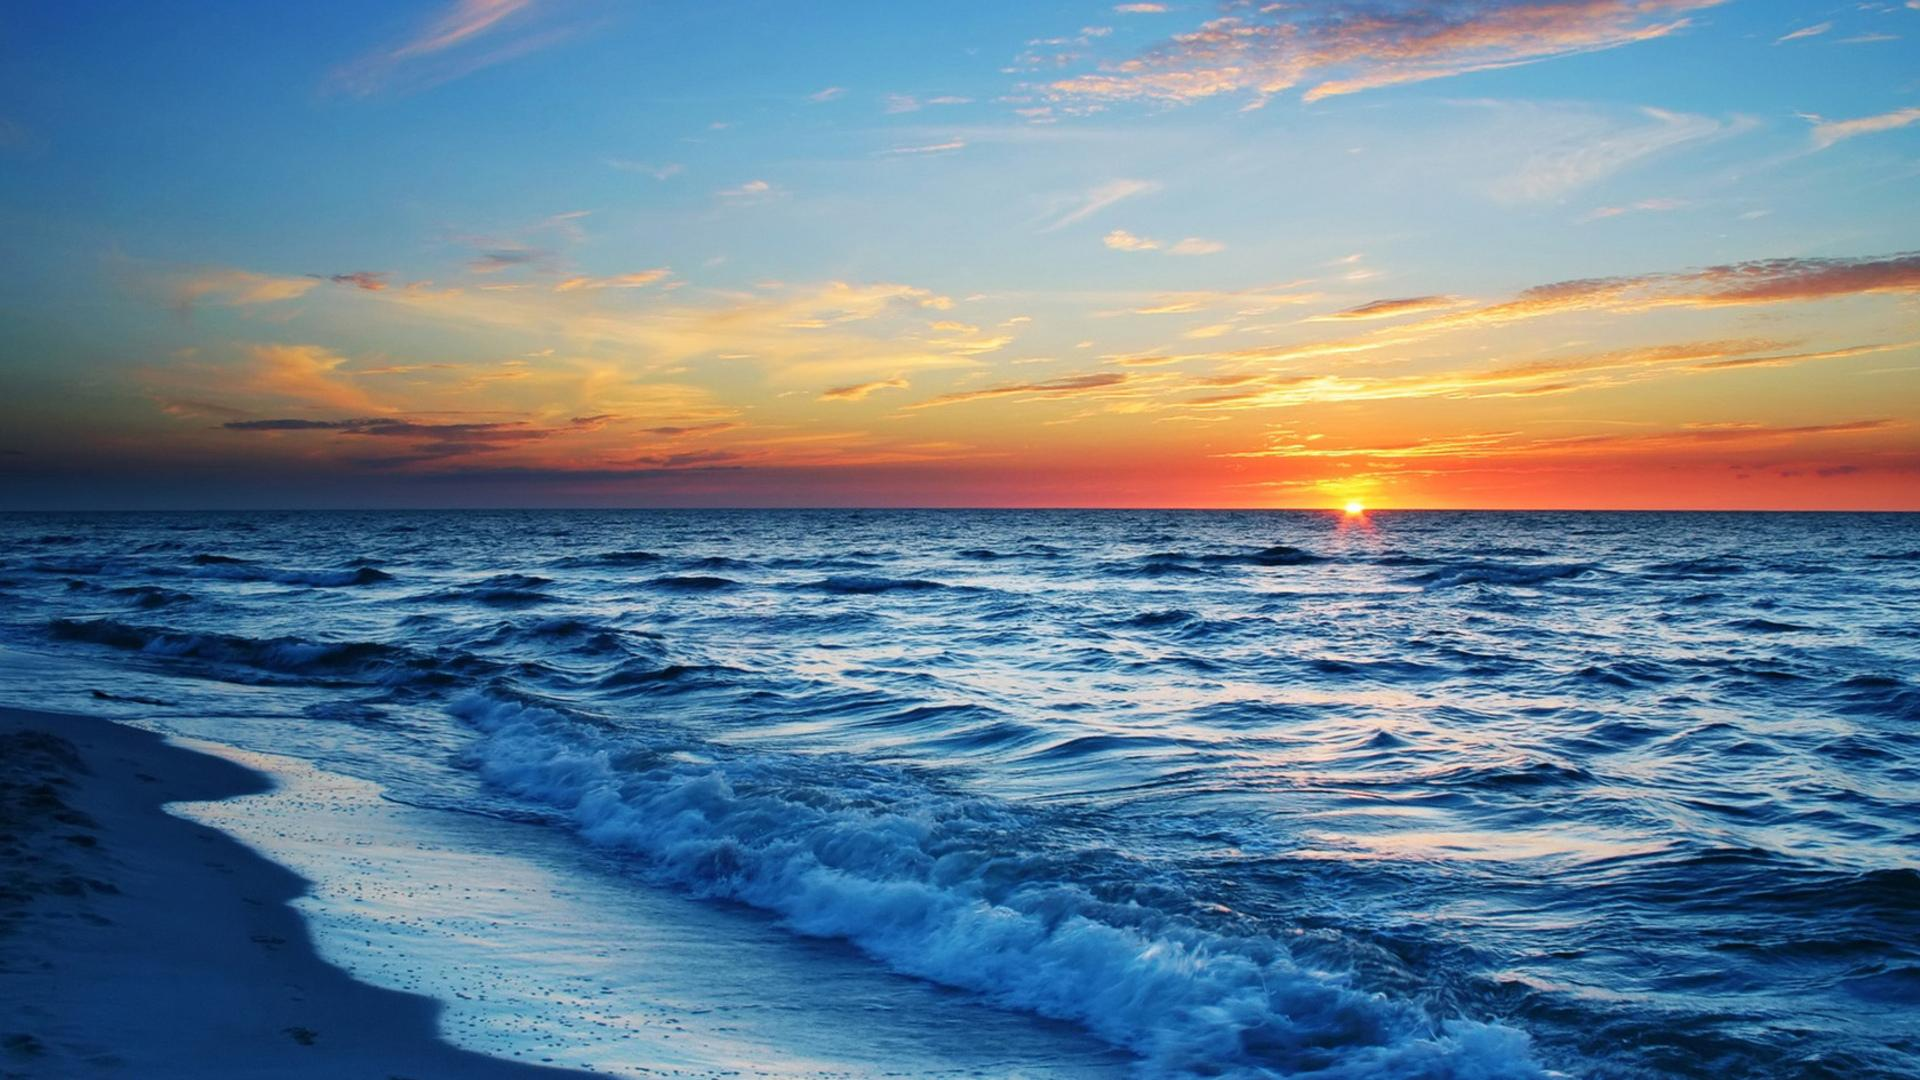 Wallpapers Collection Ocean Sunset Wallpapers 1920x1080